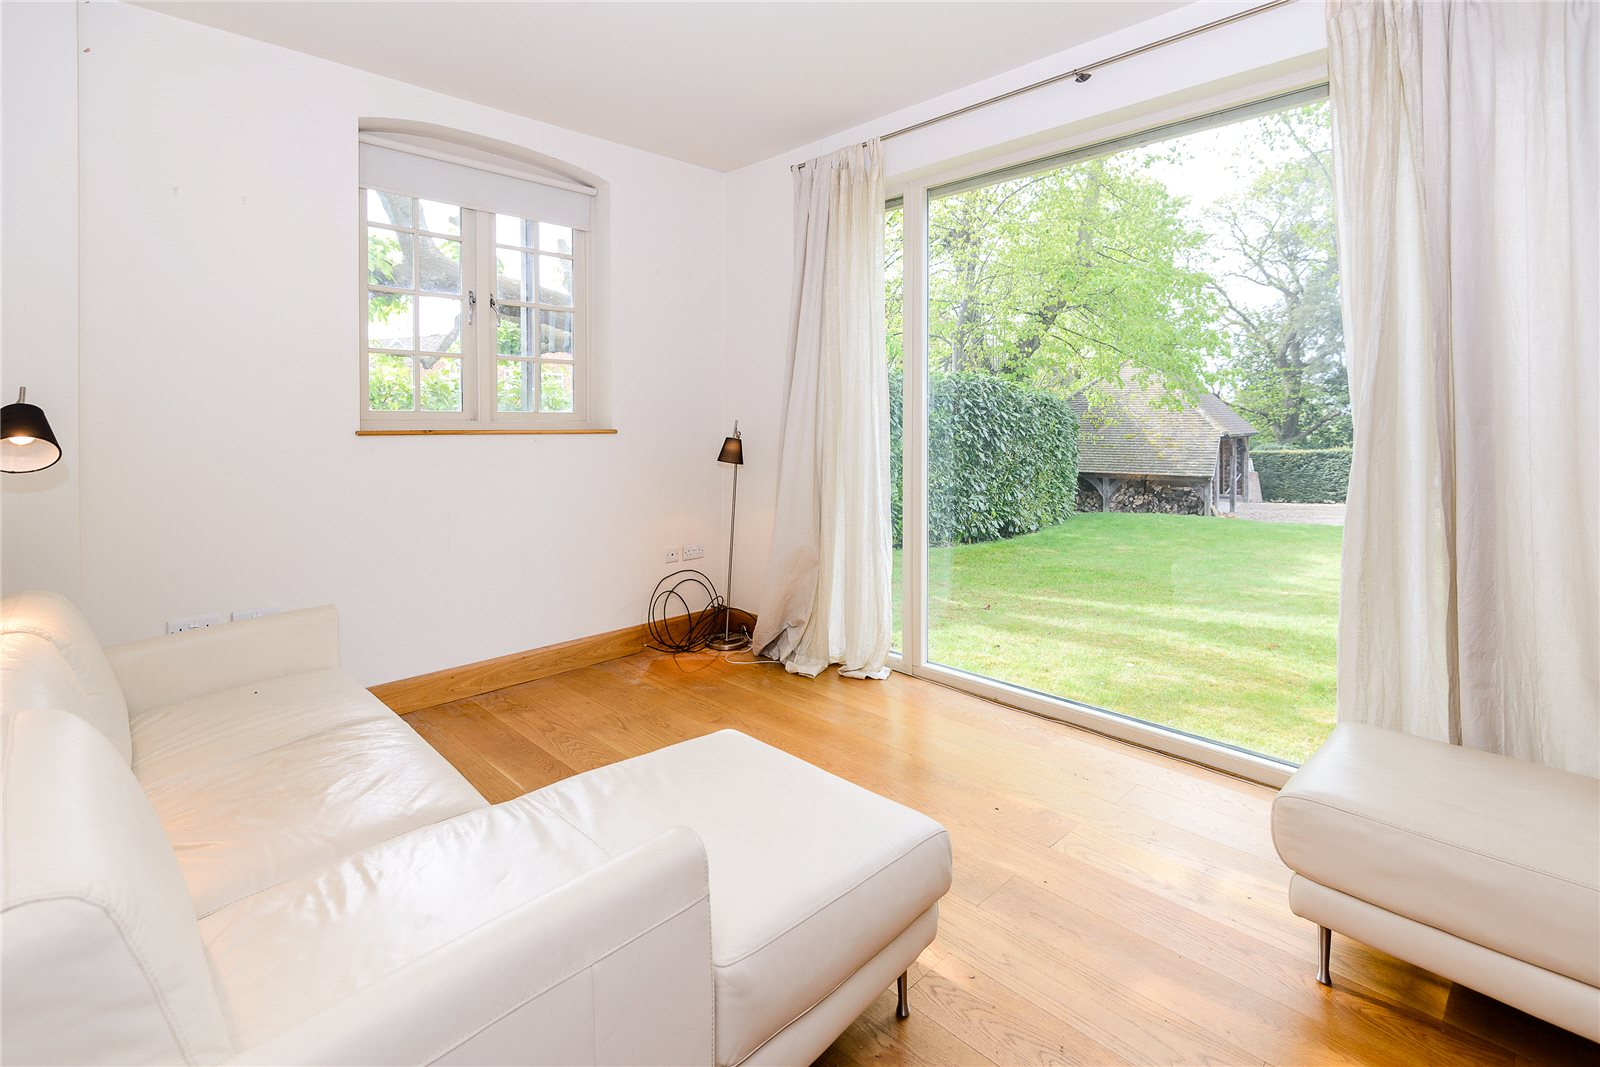 Additional photo for property listing at Rogers Lane, Stoke Poges, Buckinghamshire, SL2 Stoke Poges, 英格兰